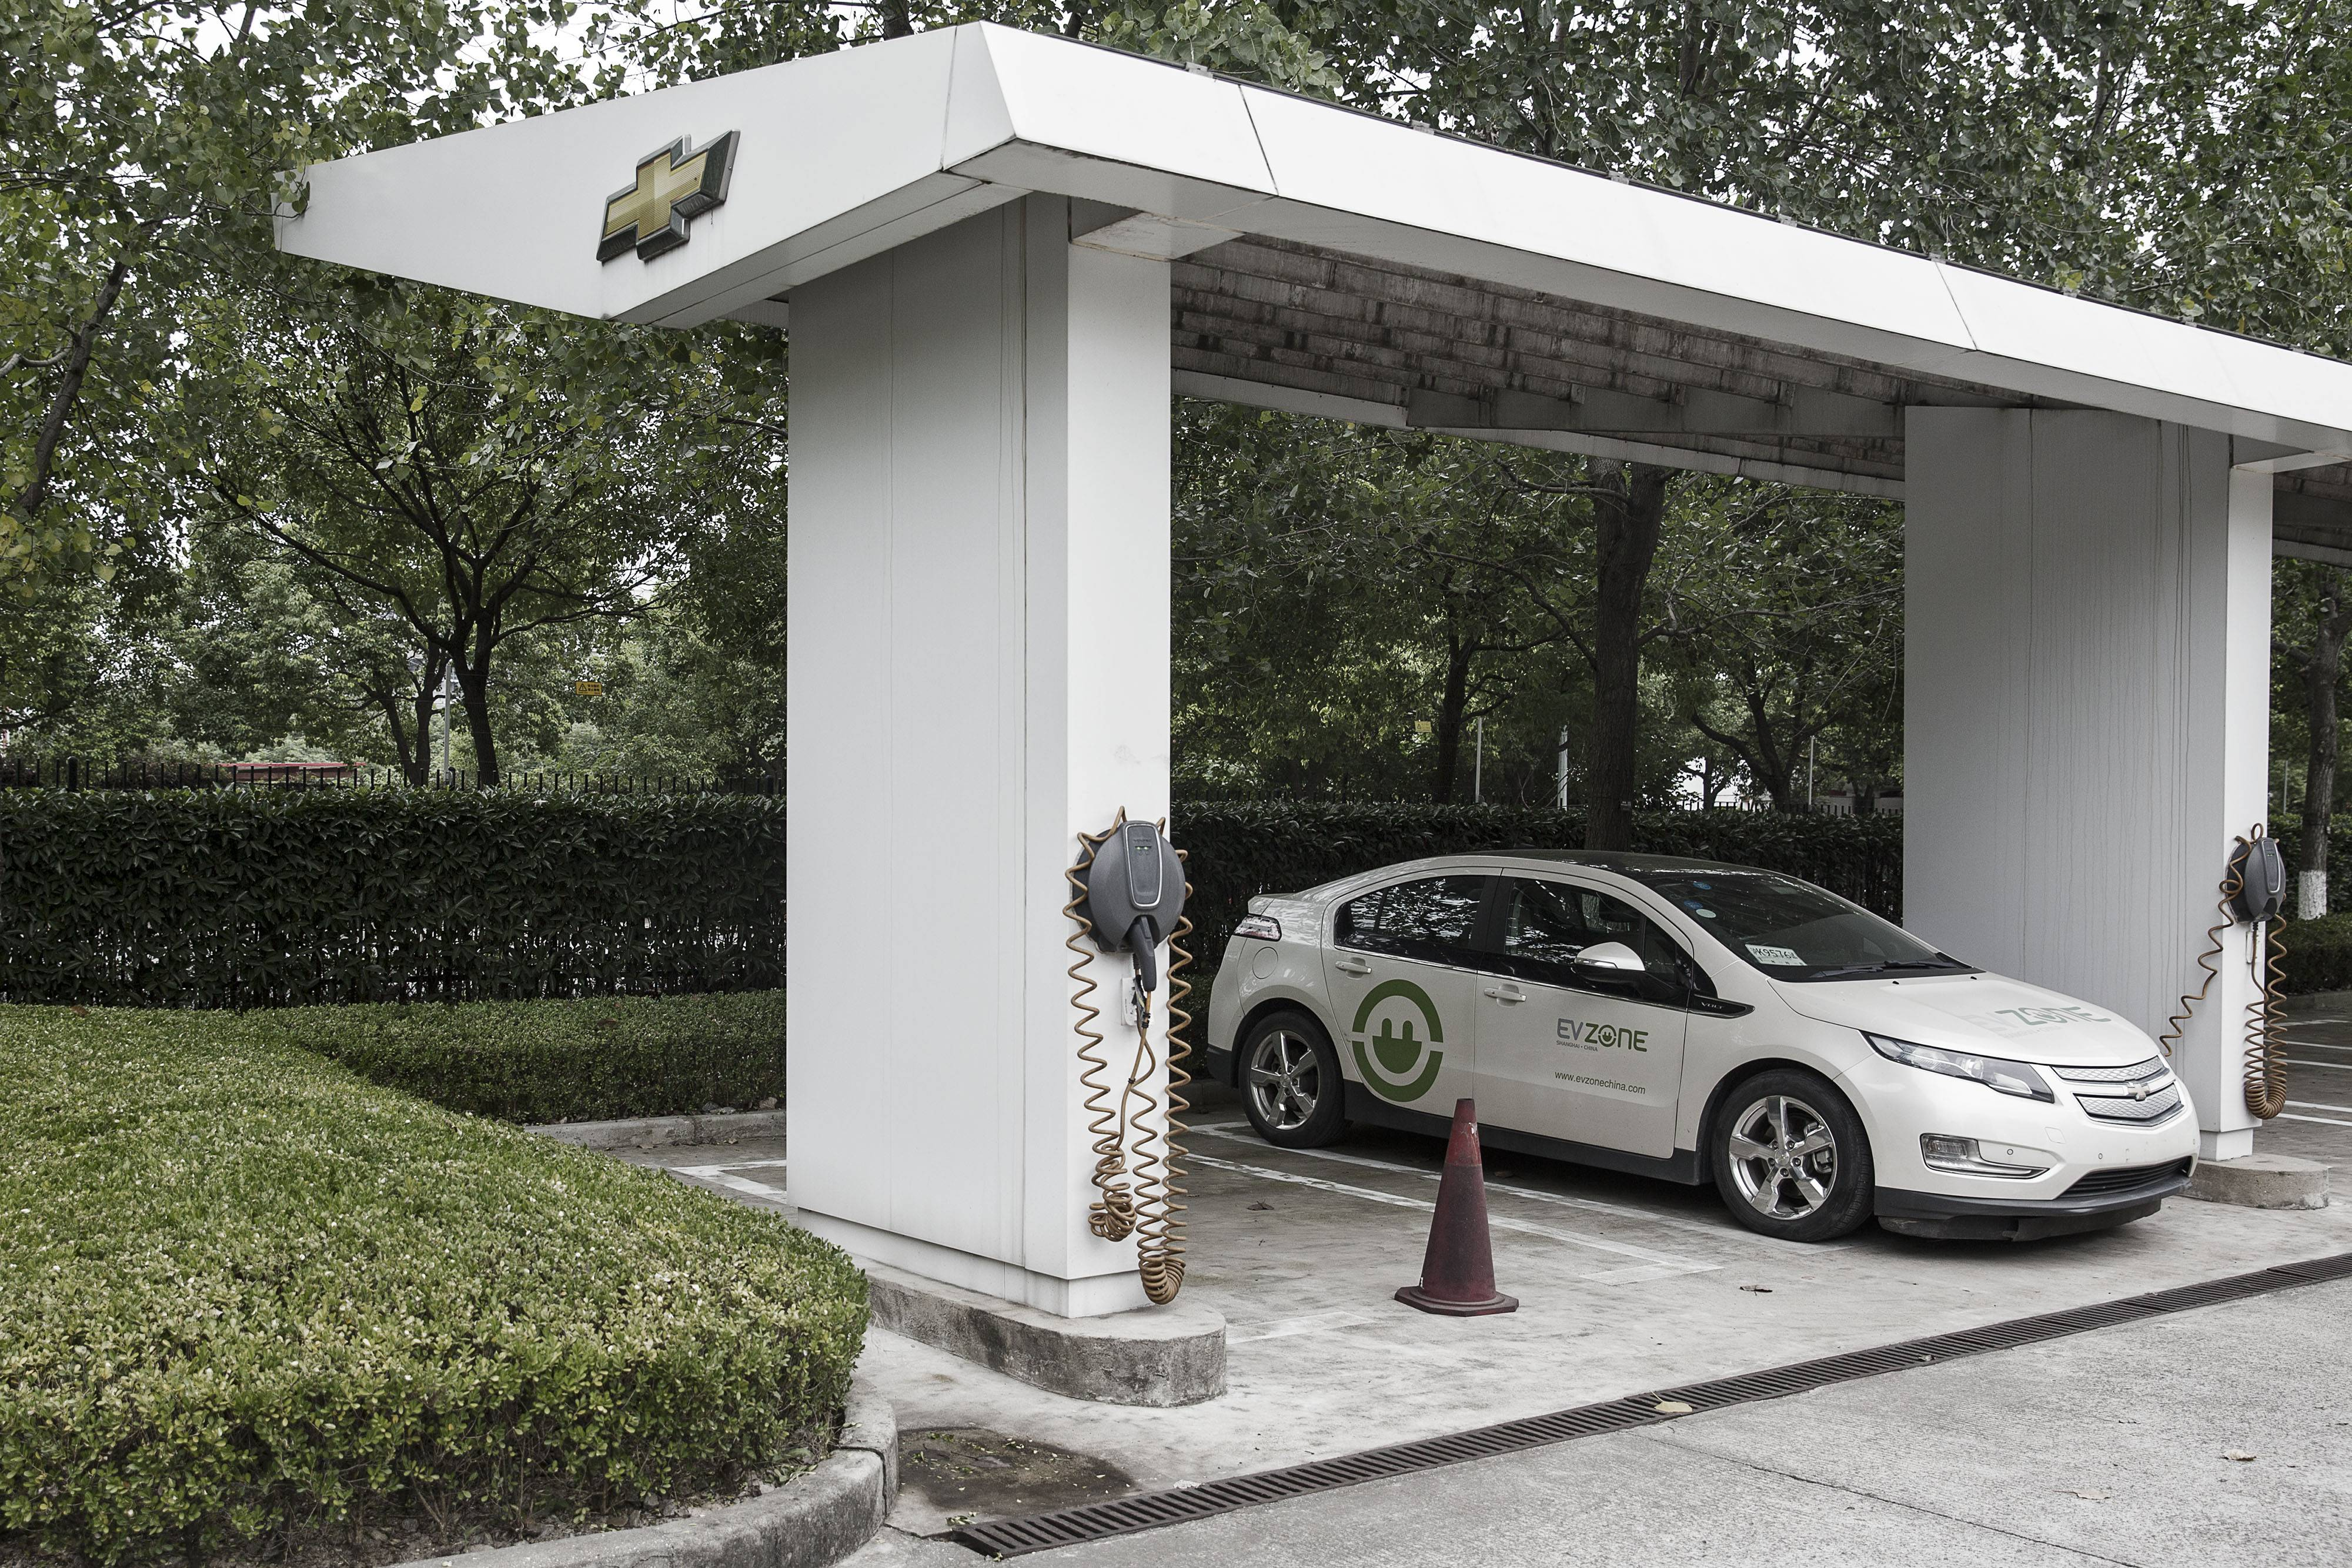 A Chevrolet Volt electric vehicle sits parked at a charging station at the General Motors China headquarters in Shanghai, China.